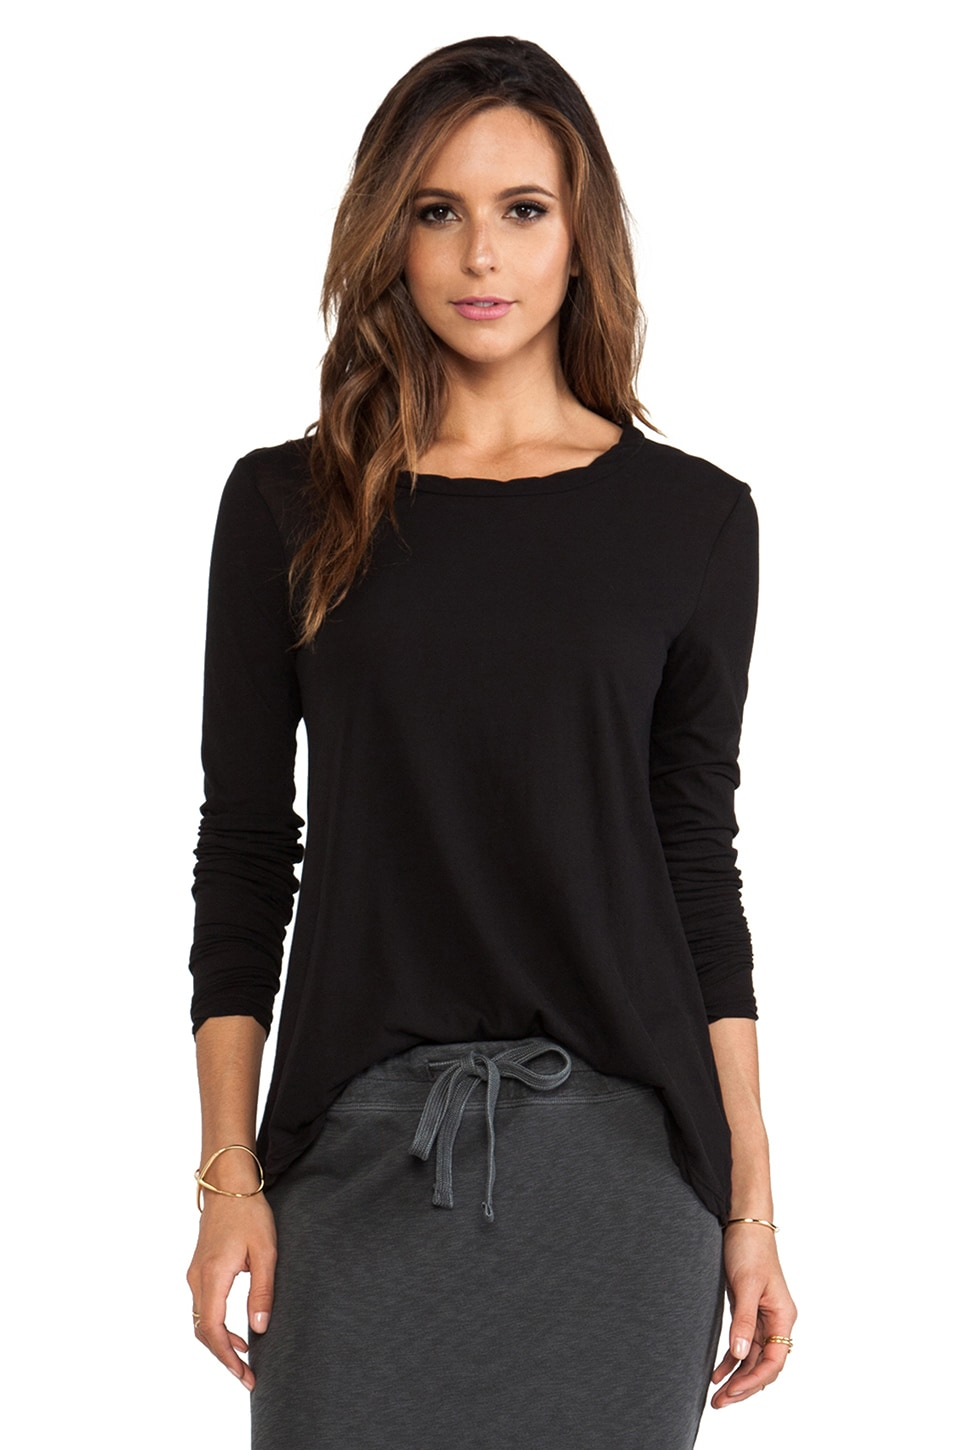 James Perse A- Line Tee in Black